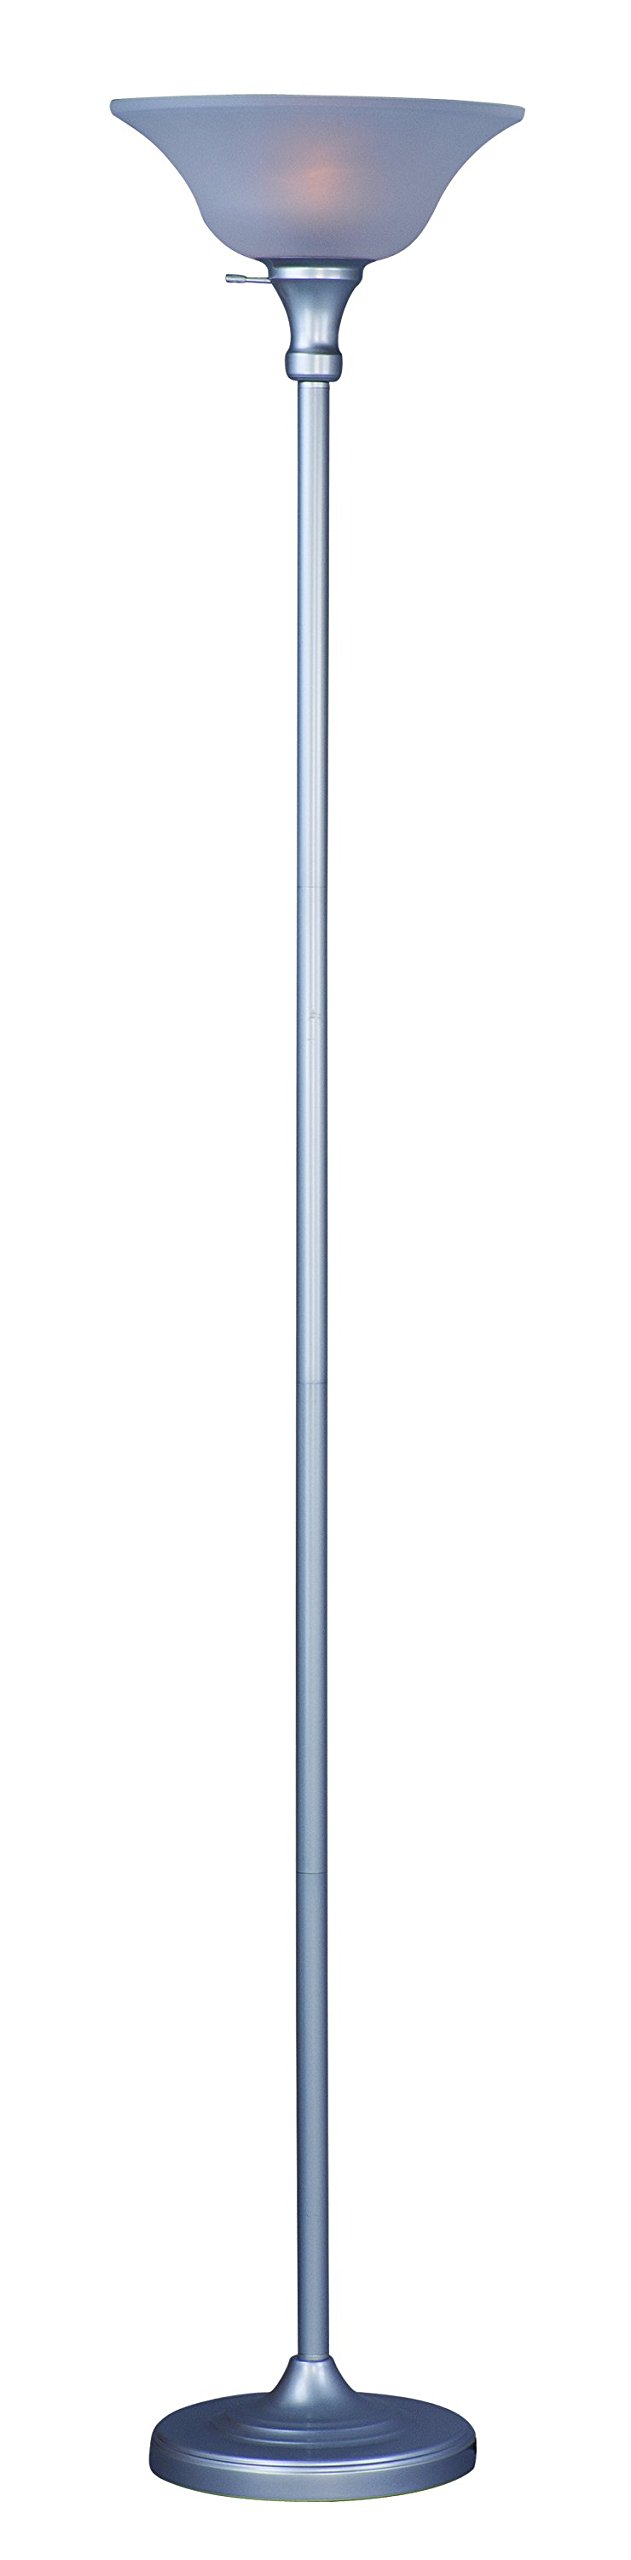 "Park Madison Lighting PMF-9171-60 150 Watt Incandescent Torchiere Floor Lamp, 72 inches High in Silver Finish with Frosted Shade, Transitional Design - Incandescent torcher floor lamp with thicker column and designer style frosted shade; 12"" diameter, 72"" tall Silver finish Transitional design - living-room-decor, living-room, floor-lamps - 51RzQ6zSK3L -"